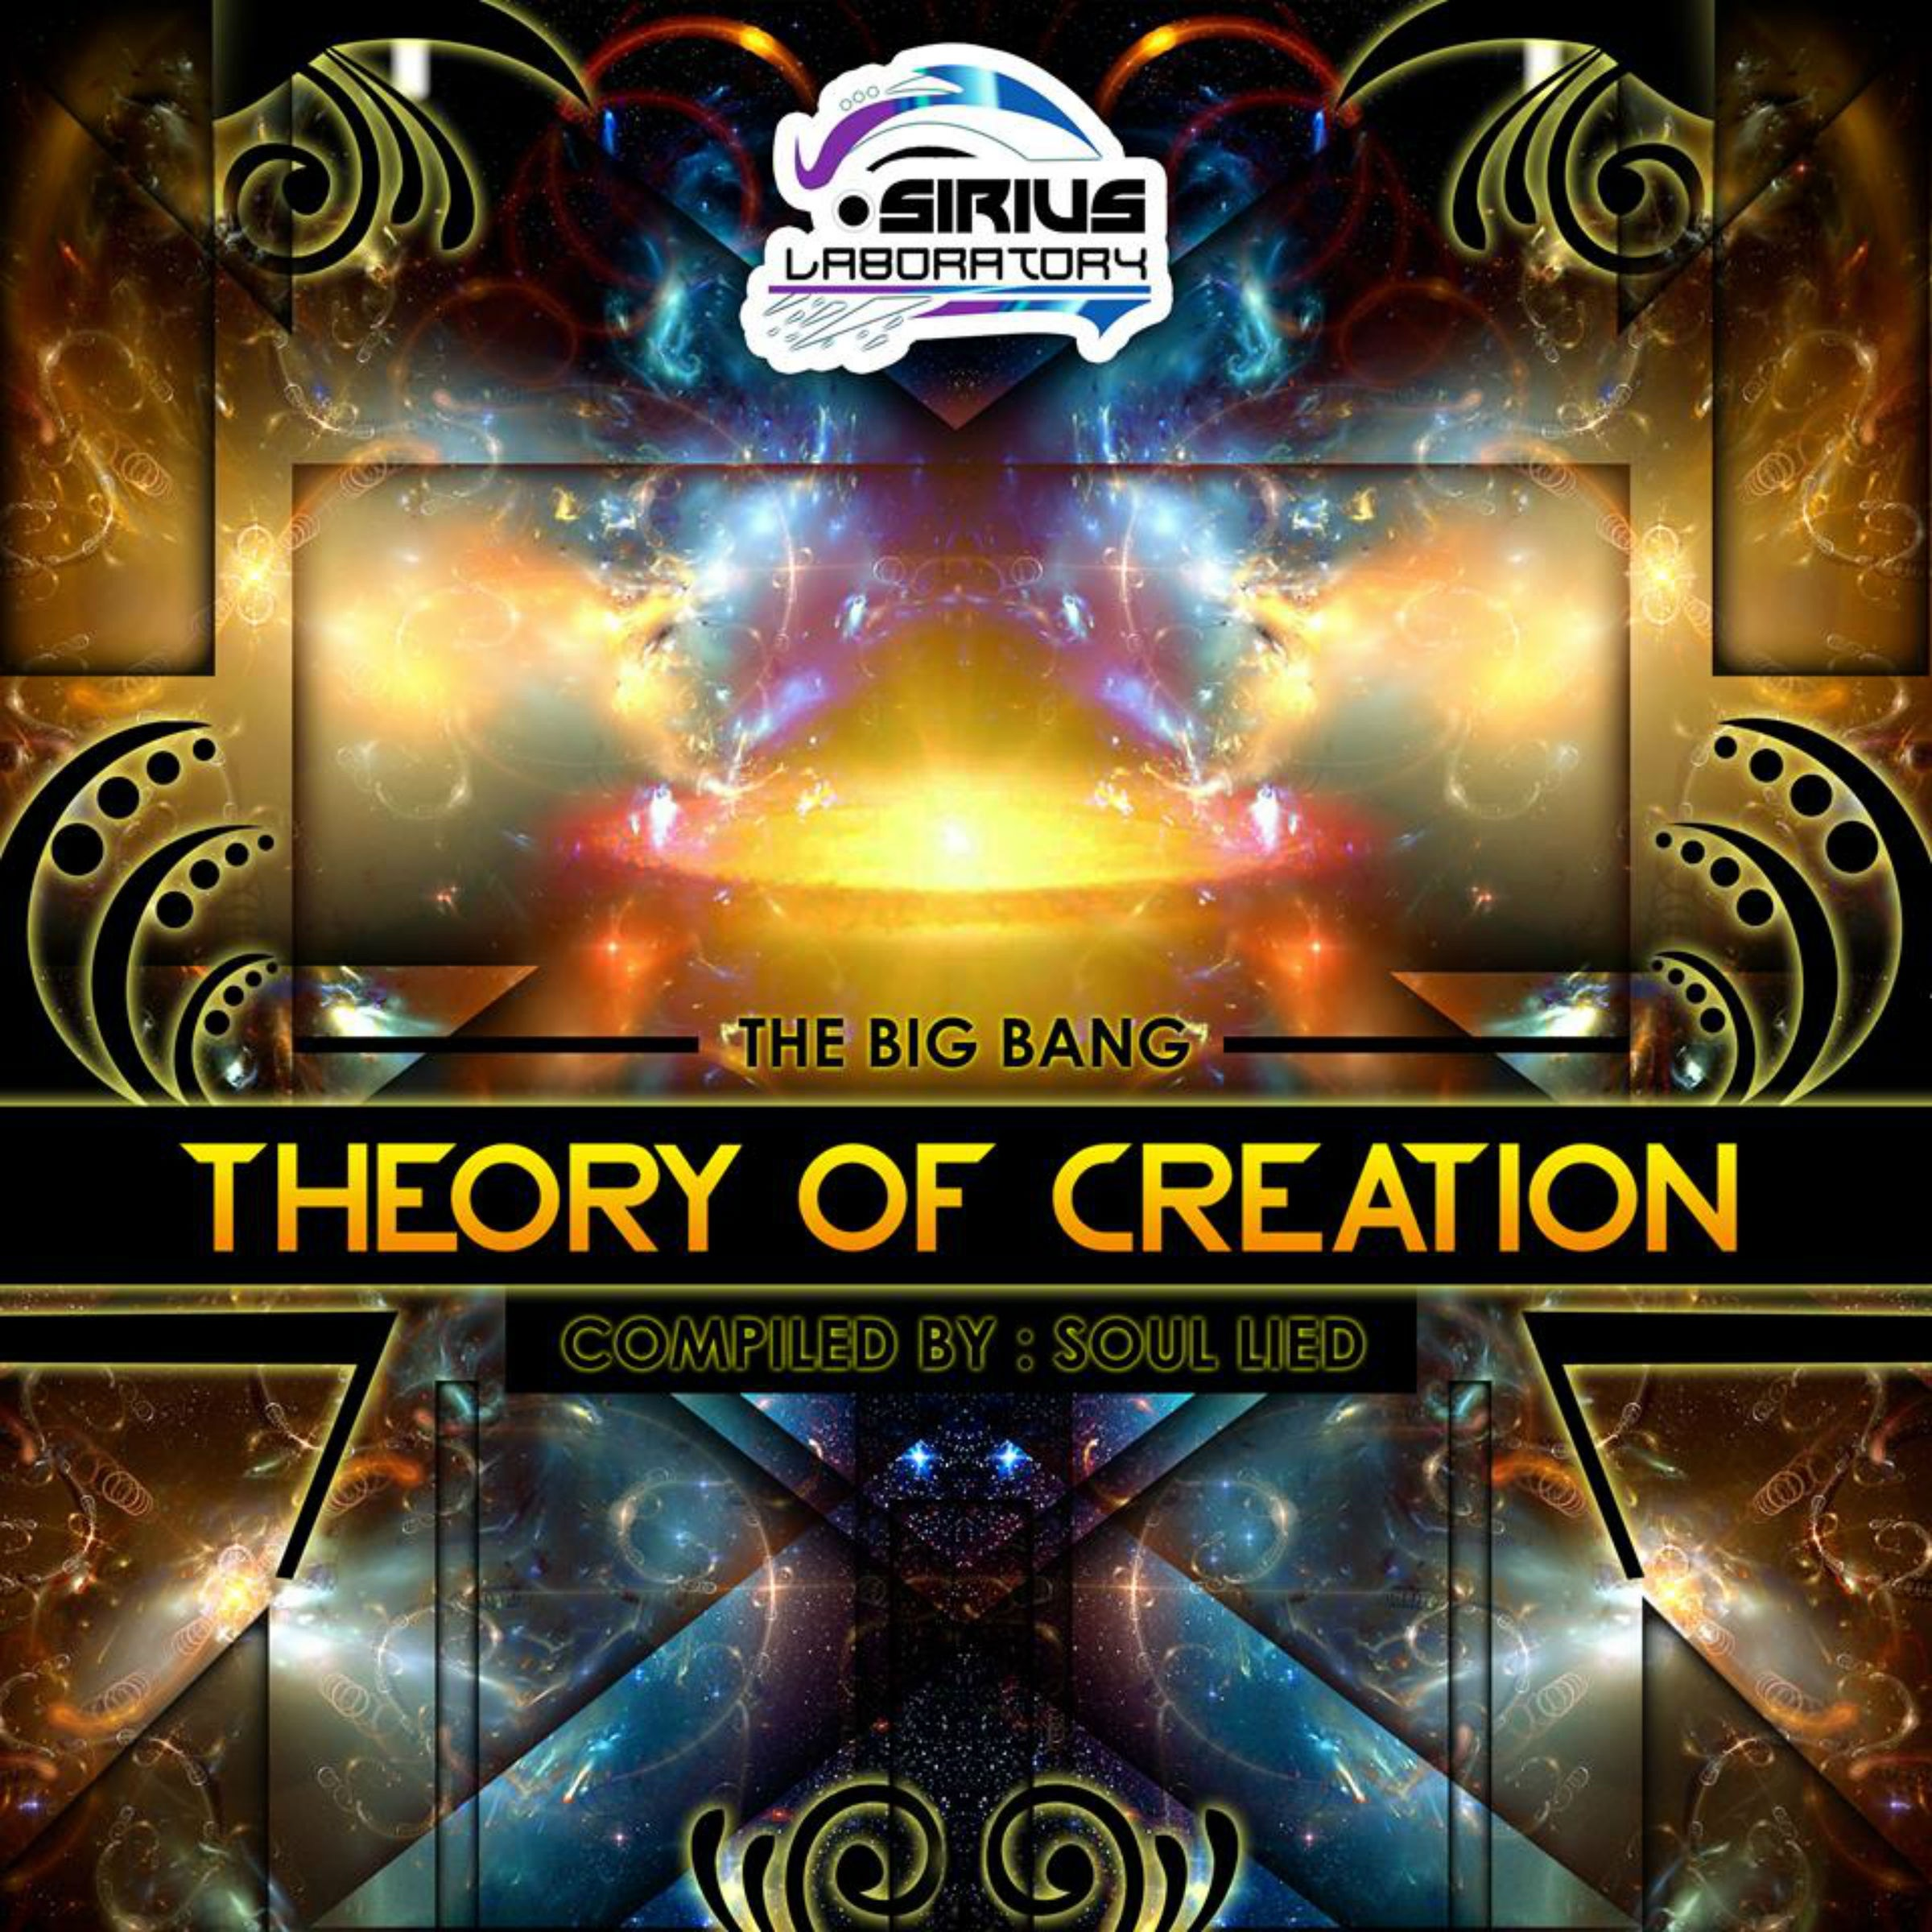 an introduction to the big bang theory of creation I think creationism is, in a sense, a kind of category mistake, as if the bible were a theory like other theories whatever the biblical account of creation is, it's not a theory alongside theories.